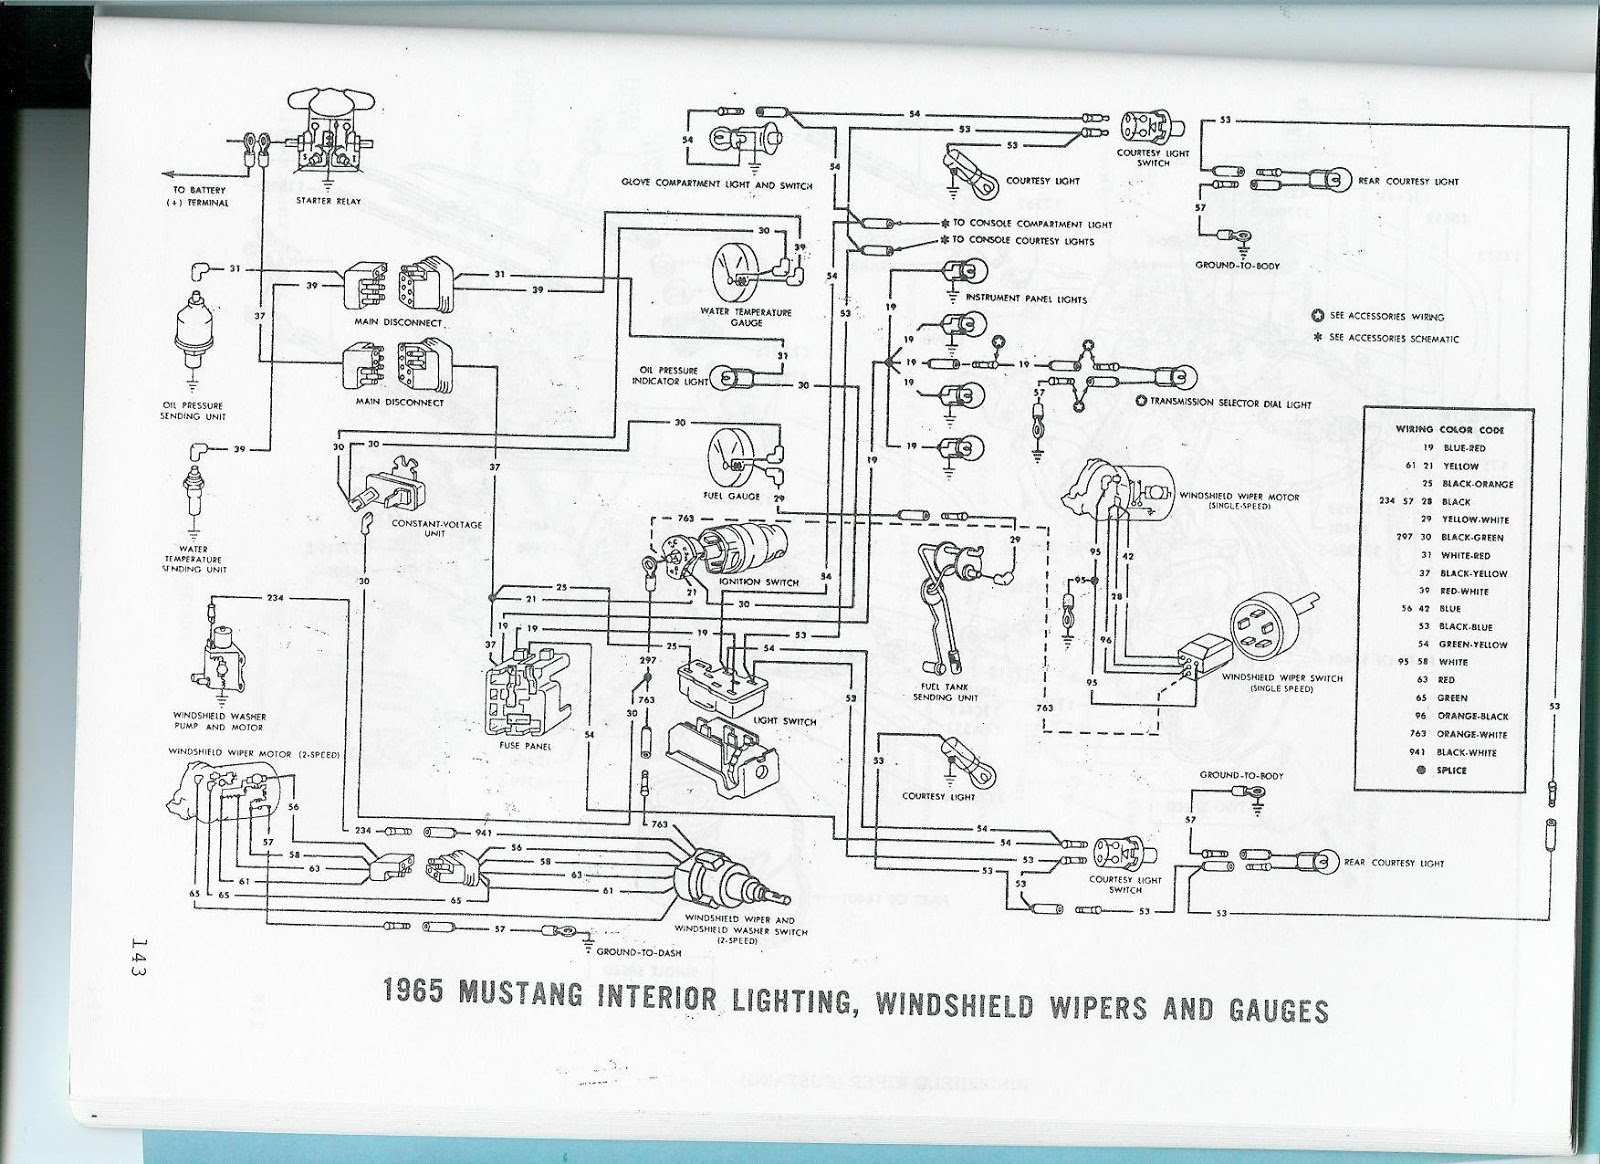 1967 Chevy Truck Fuse Box Archive Of Automotive Wiring Diagram 2006 Mack 1964 Chevelle Simple Rh David Huggett Co Uk